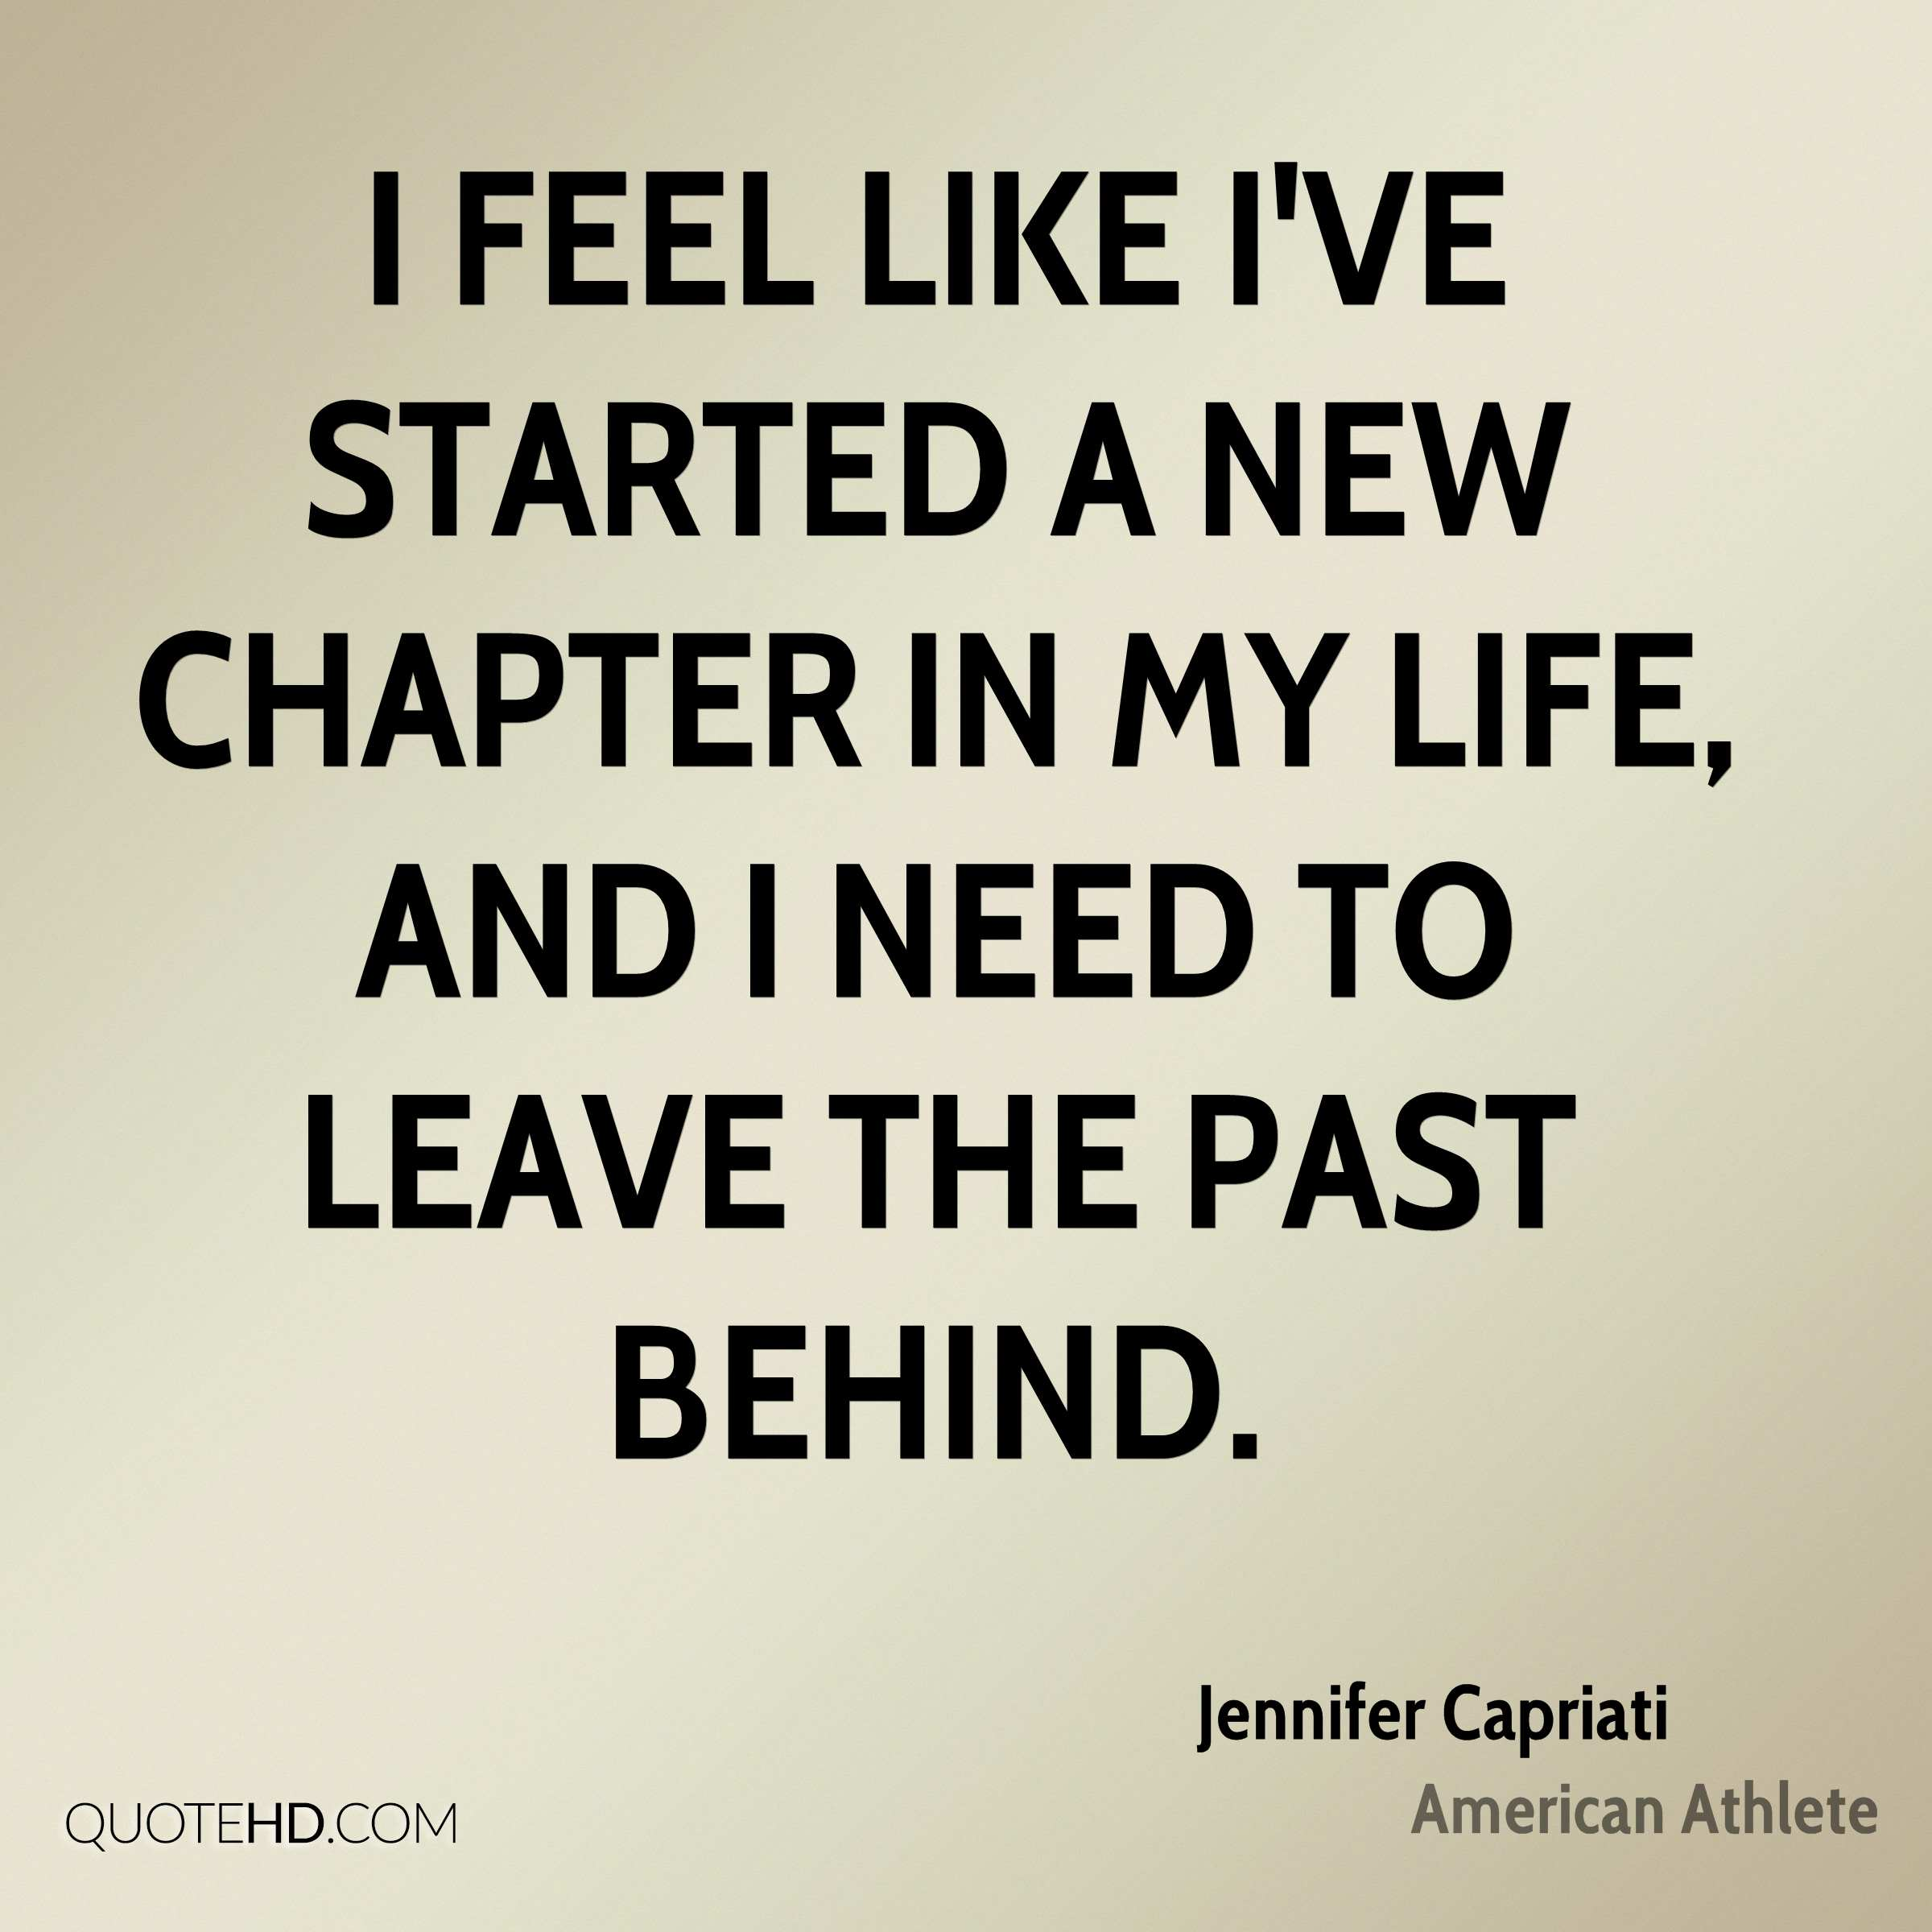 Quotes About New Life Jennifer Capriati Quotes  Quotehd